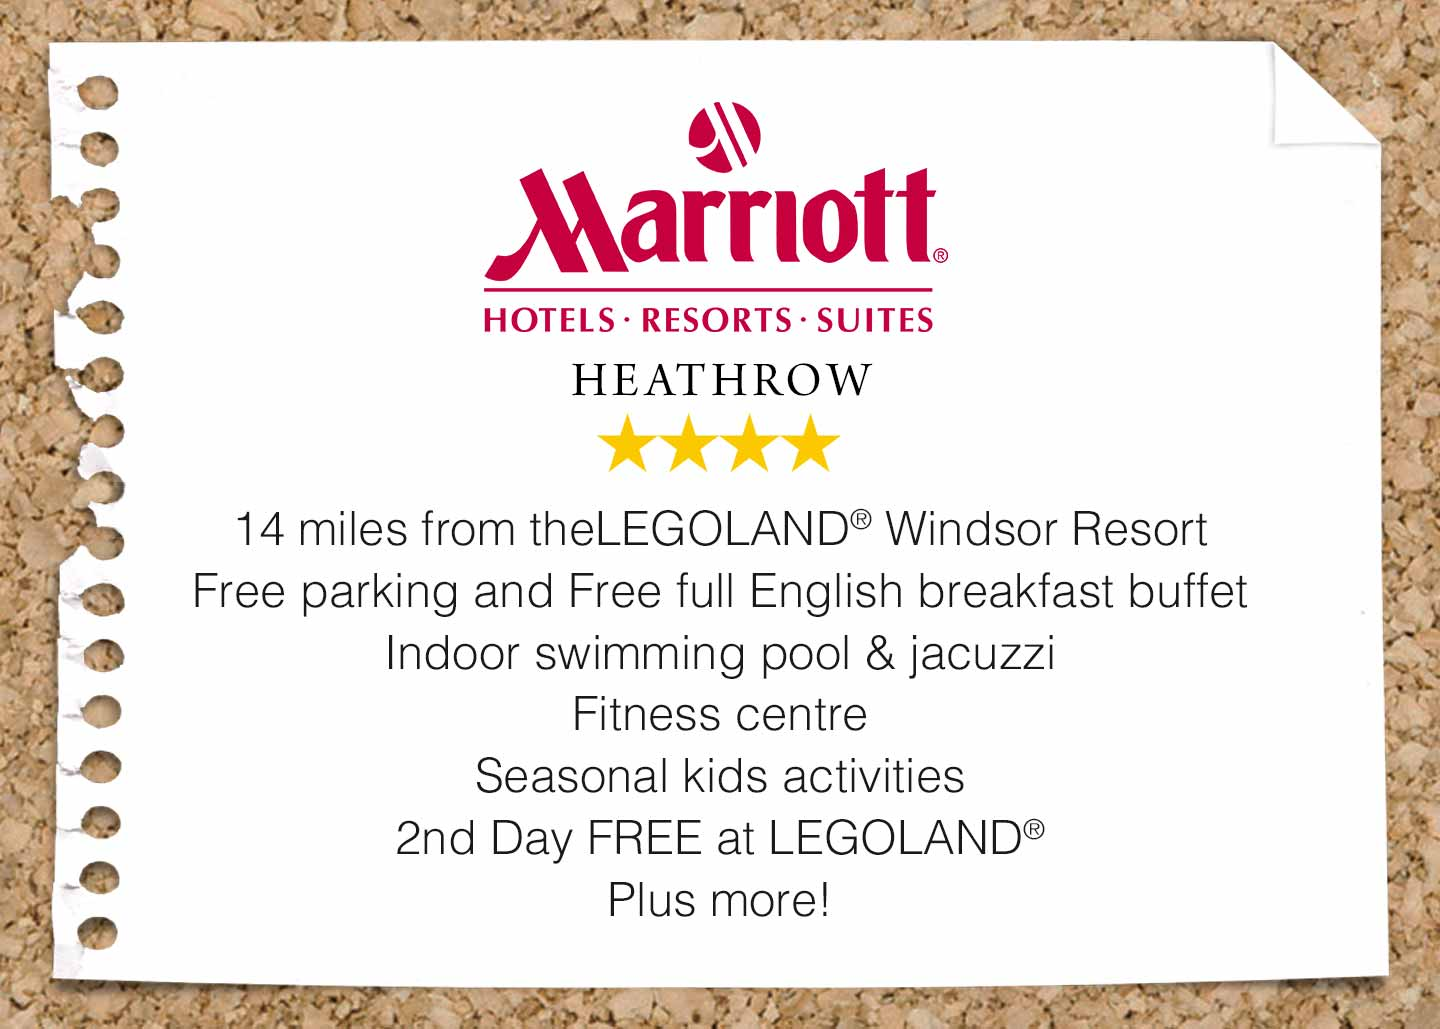 Heathrow Marriott Hotel